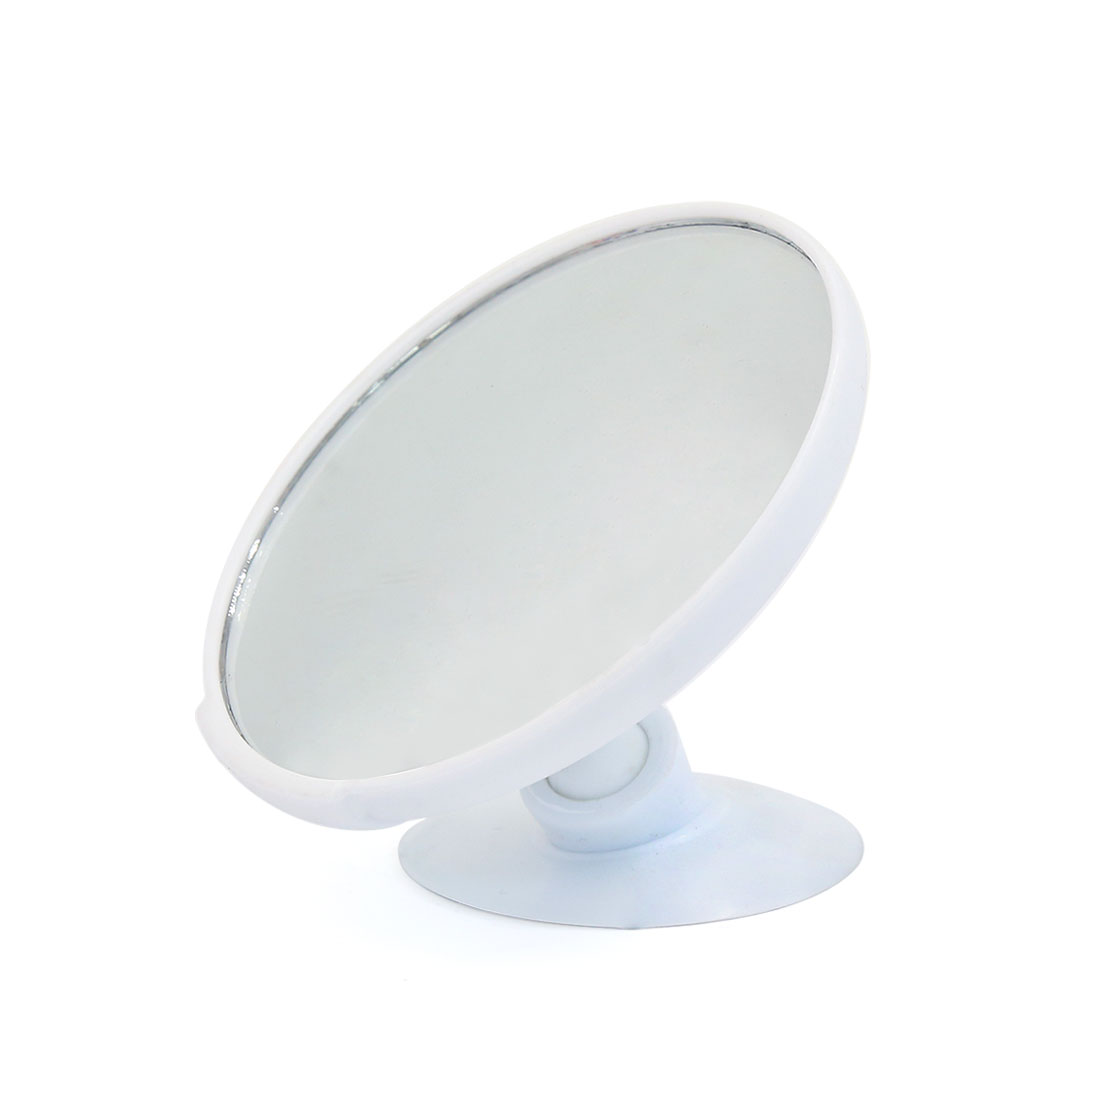 Universal 90mm Dia Convex Wide Angle Car Interior Blind Spot Rear View Suction Mirror White